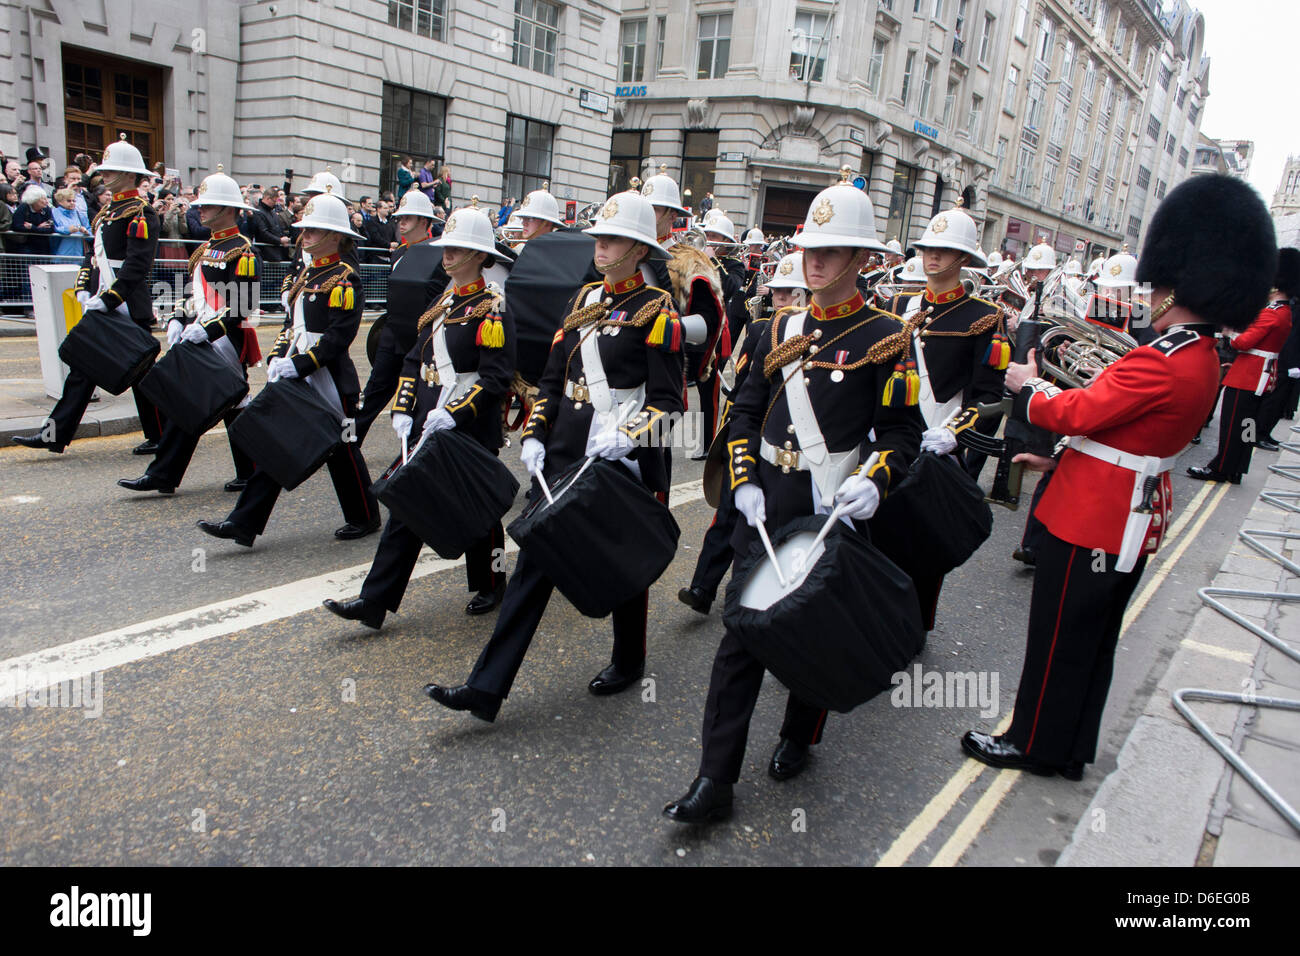 majesties stock images in concert museum royal outdoor photo the marines eastney massed bands photos by band at her